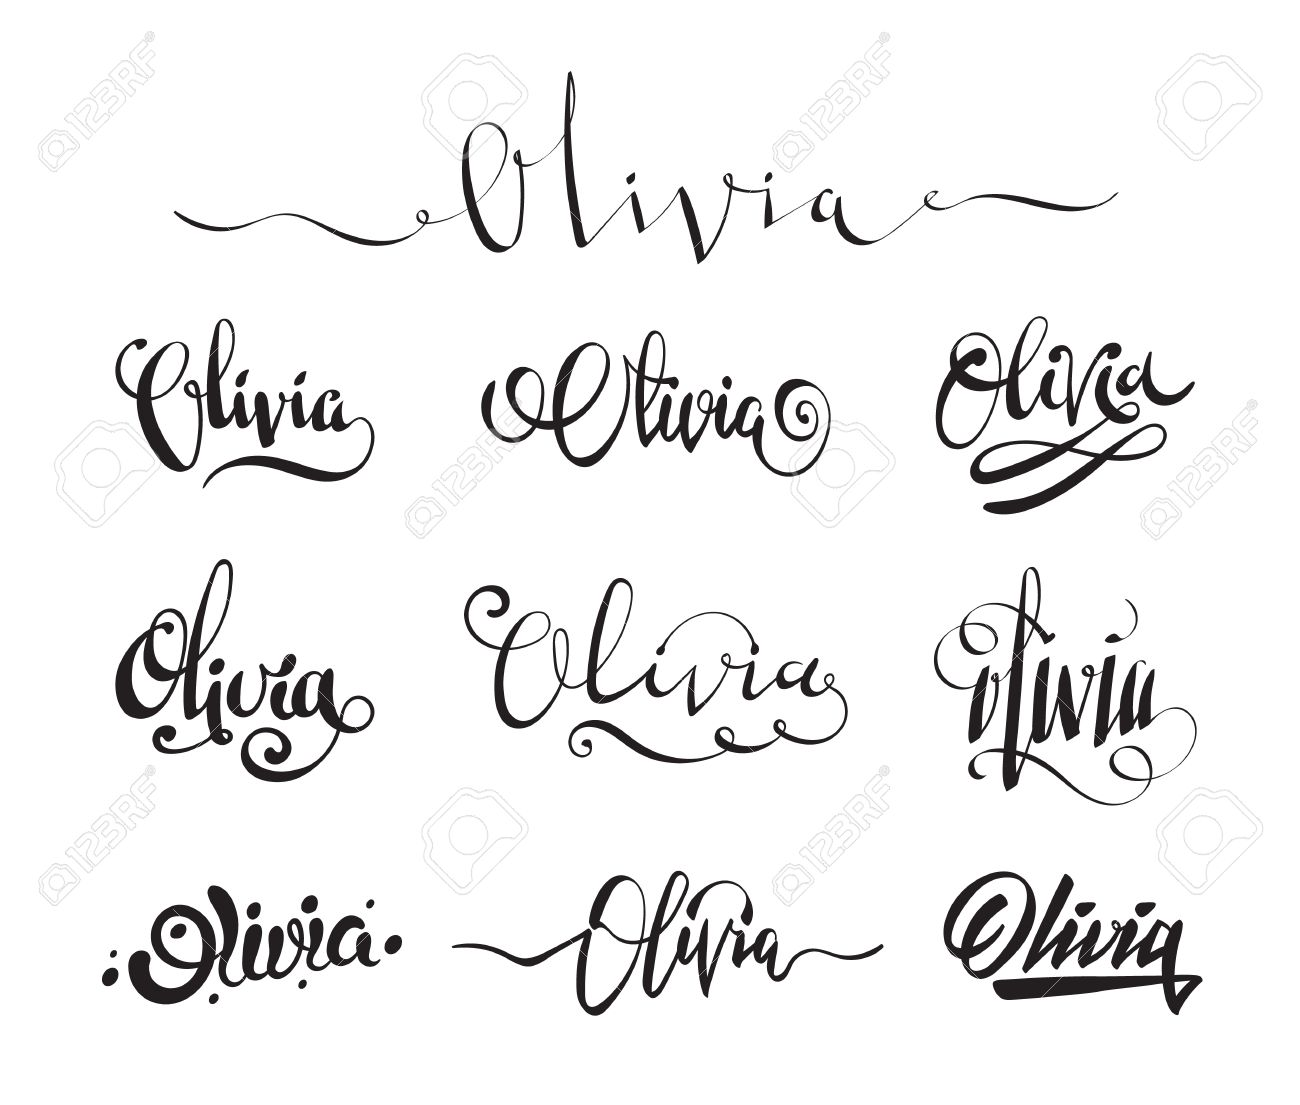 Calligraphy Tattoo Picture Personal Name Olivia Vector Handwritten Calligraphy Tattoo Design